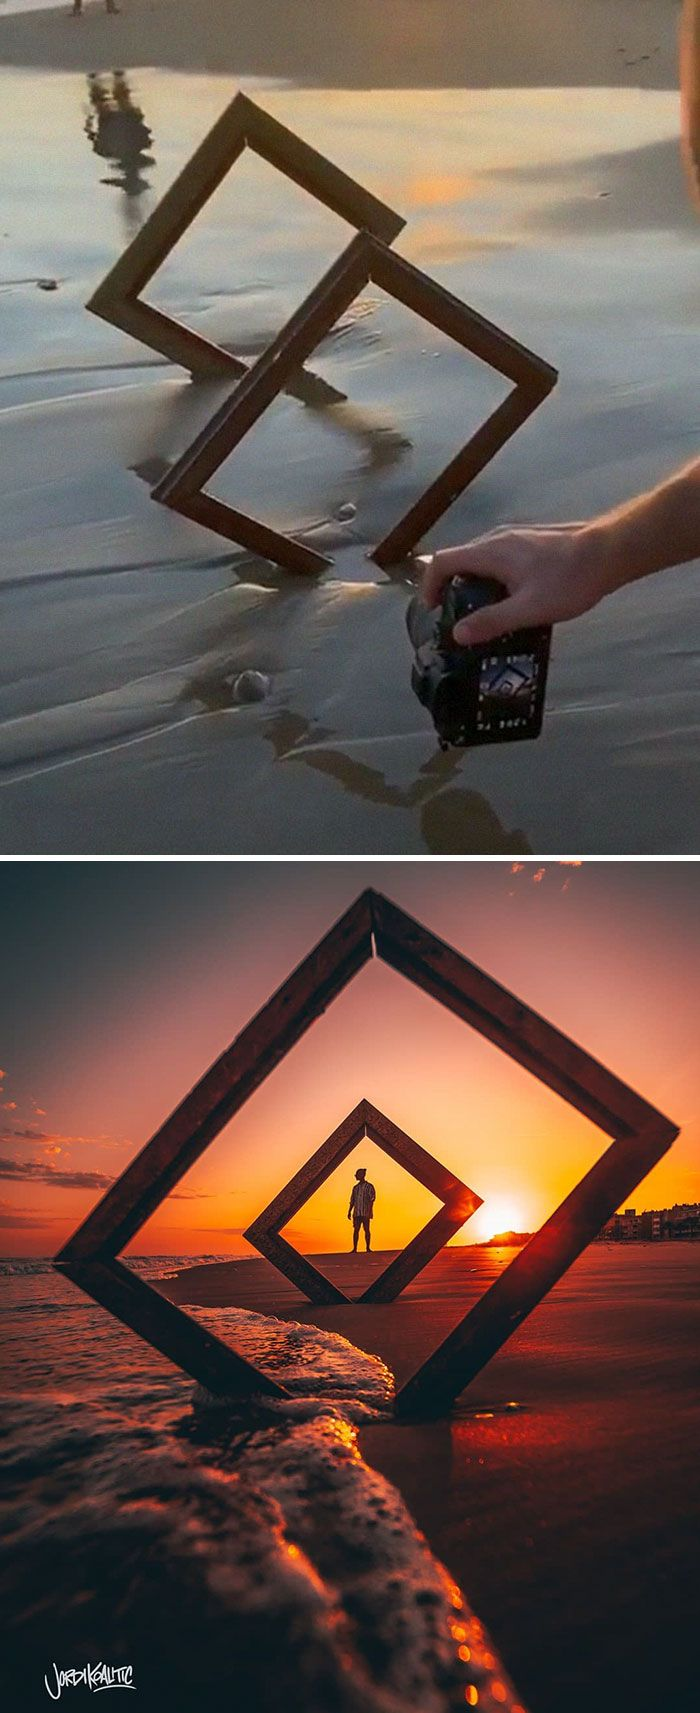 Creative-Photography-Tips-Tricks-Jordi-Puig – Photo ideas